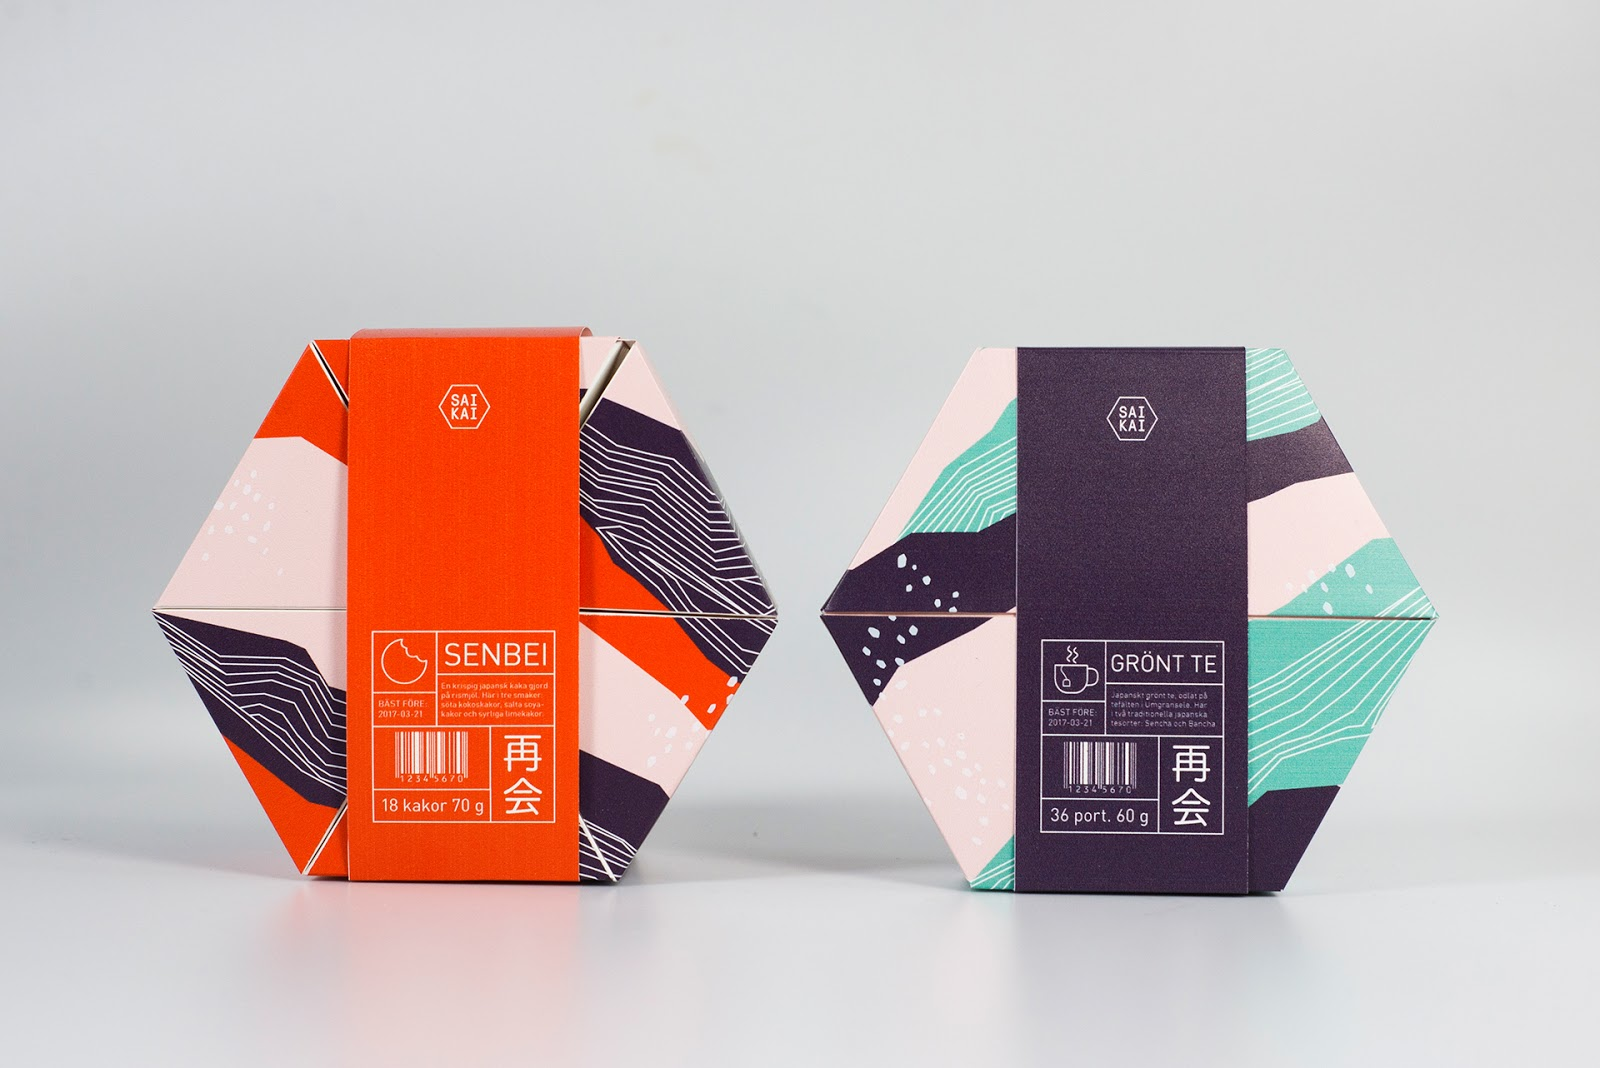 saikai student project on packaging of the world creative